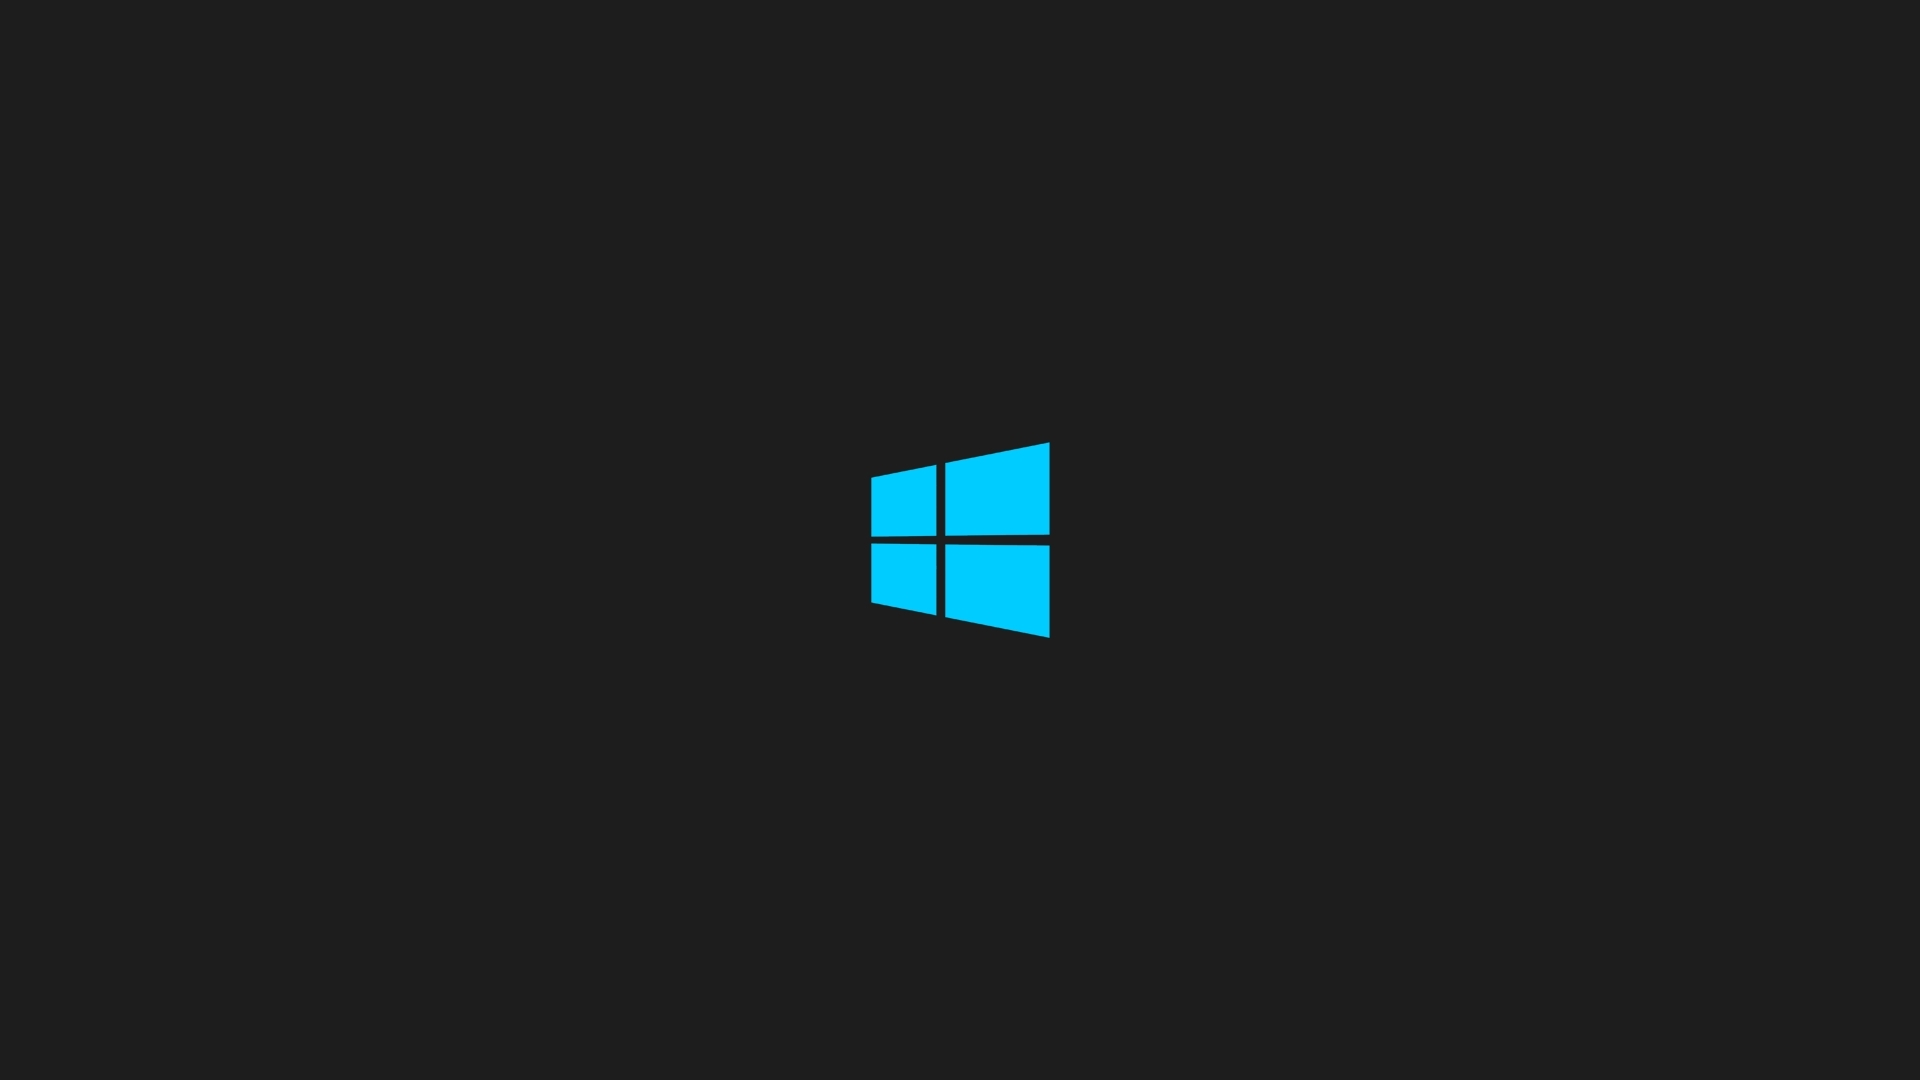 clean windows logo 1920x1080 wallpaper Best WallpapersTop Wallpapers 1920x1080